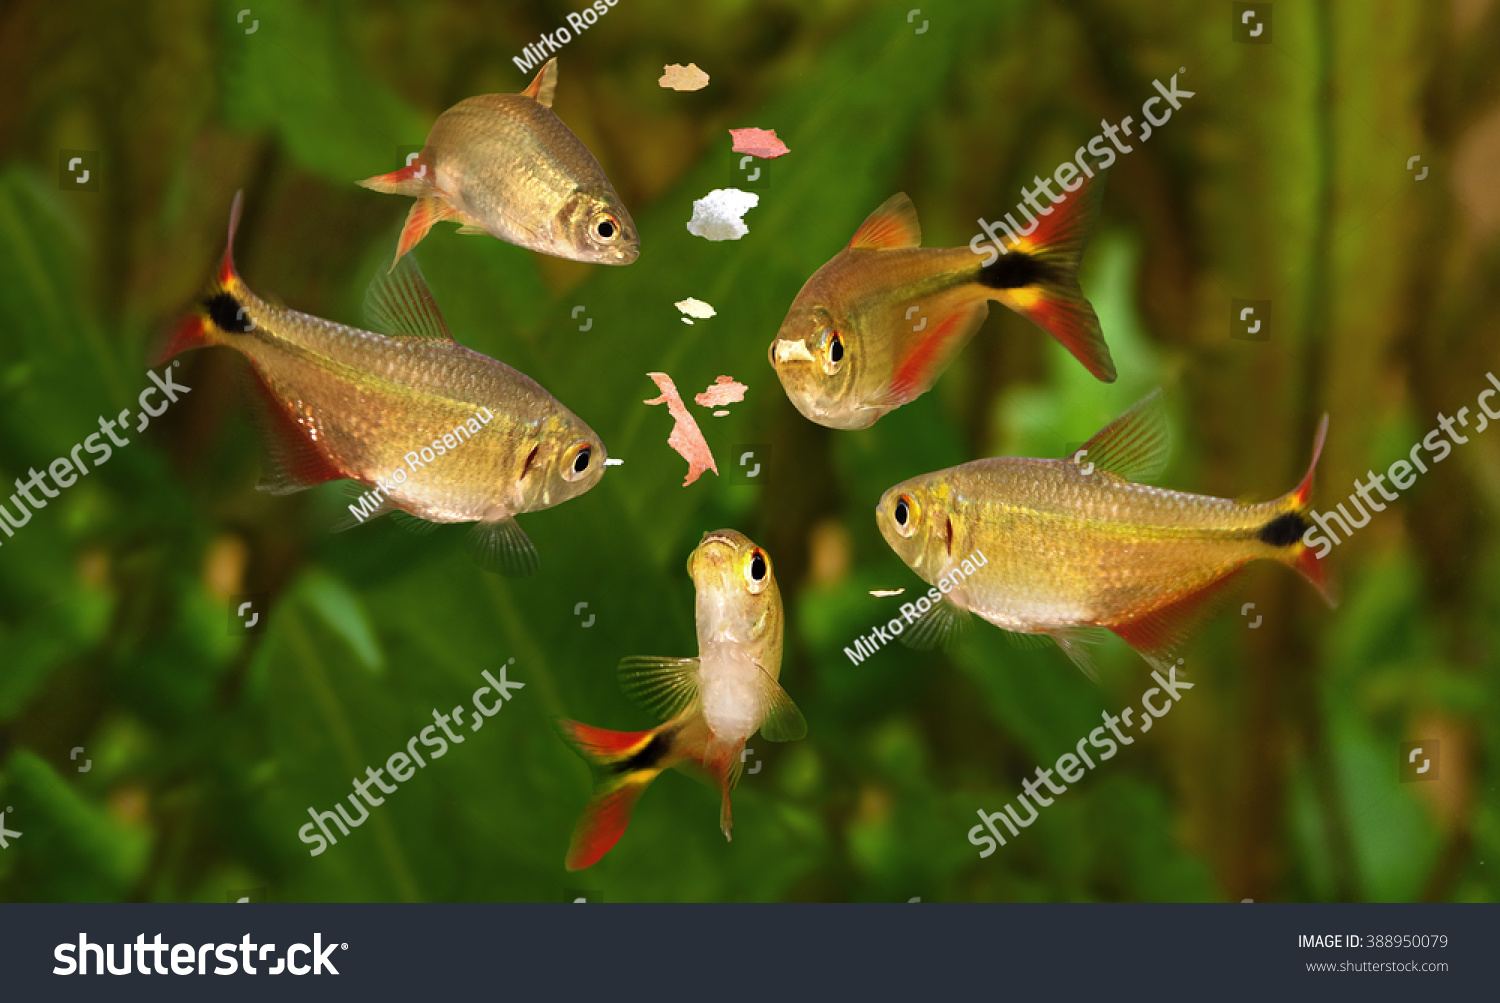 Feeding swarm buenos aires tetra aquarium stock photo for Freshwater fish to eat